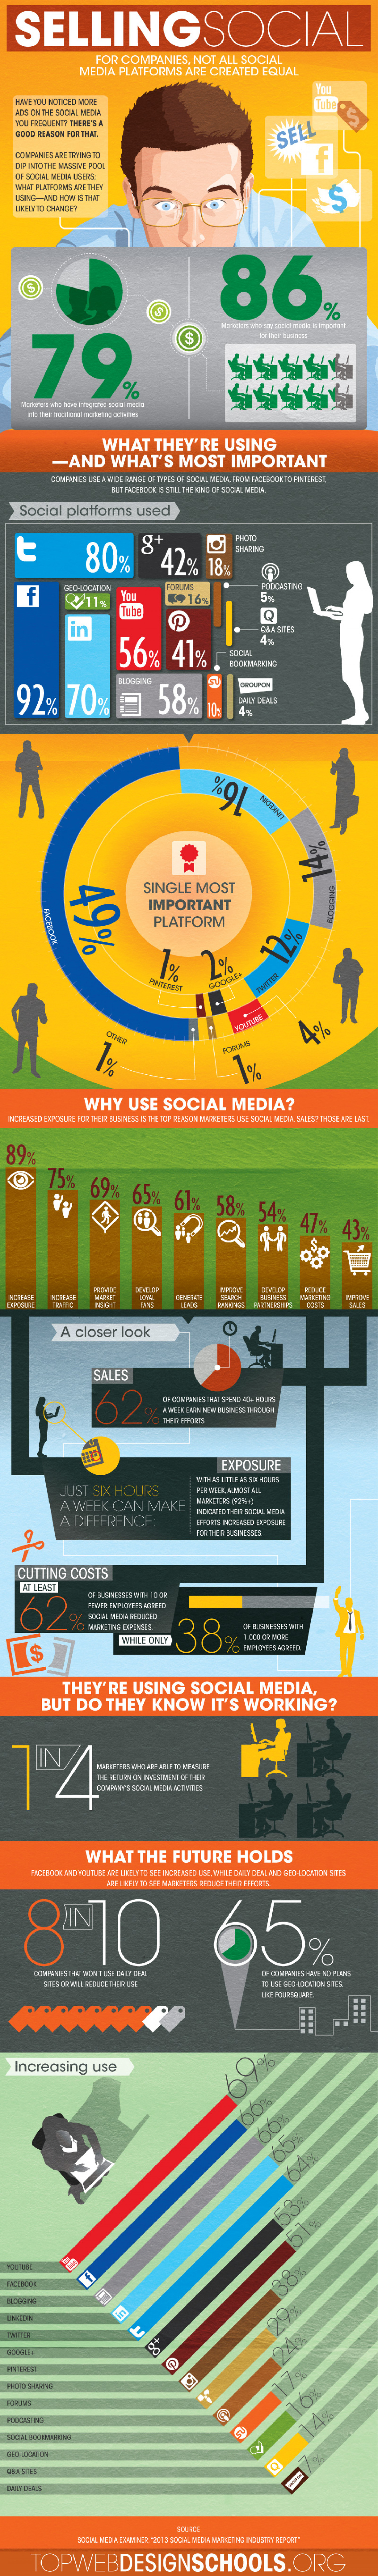 Selling On Social Media Infographic